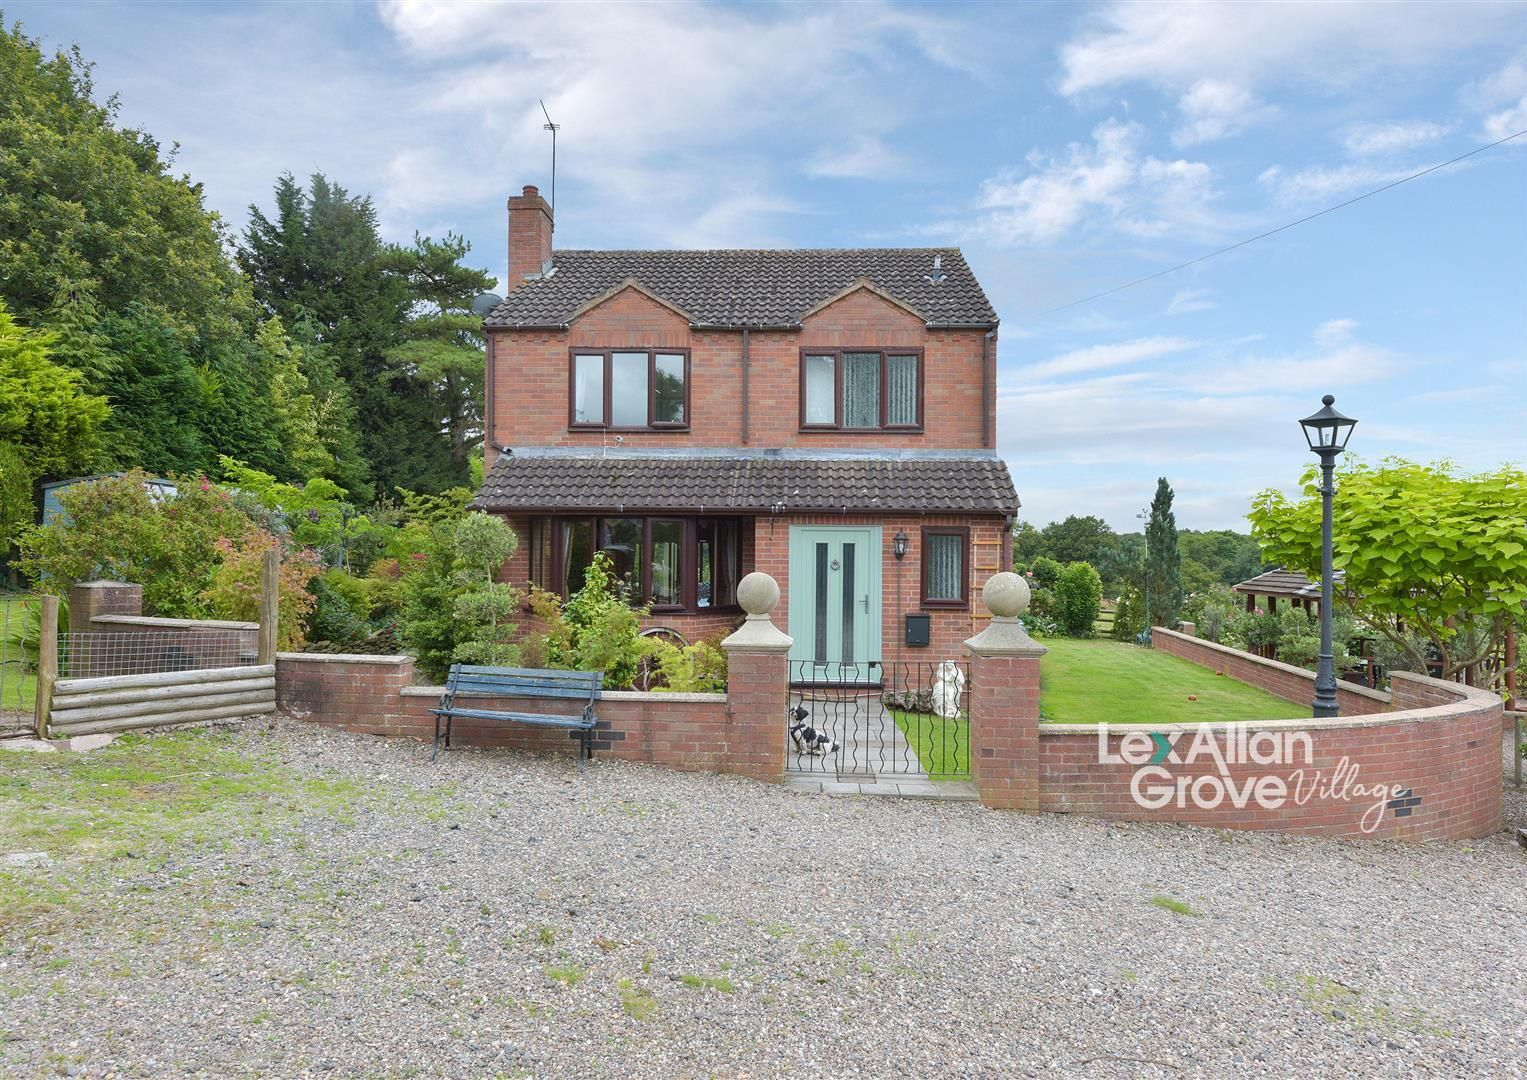 3 bed detached for sale in Kinlet, DY12